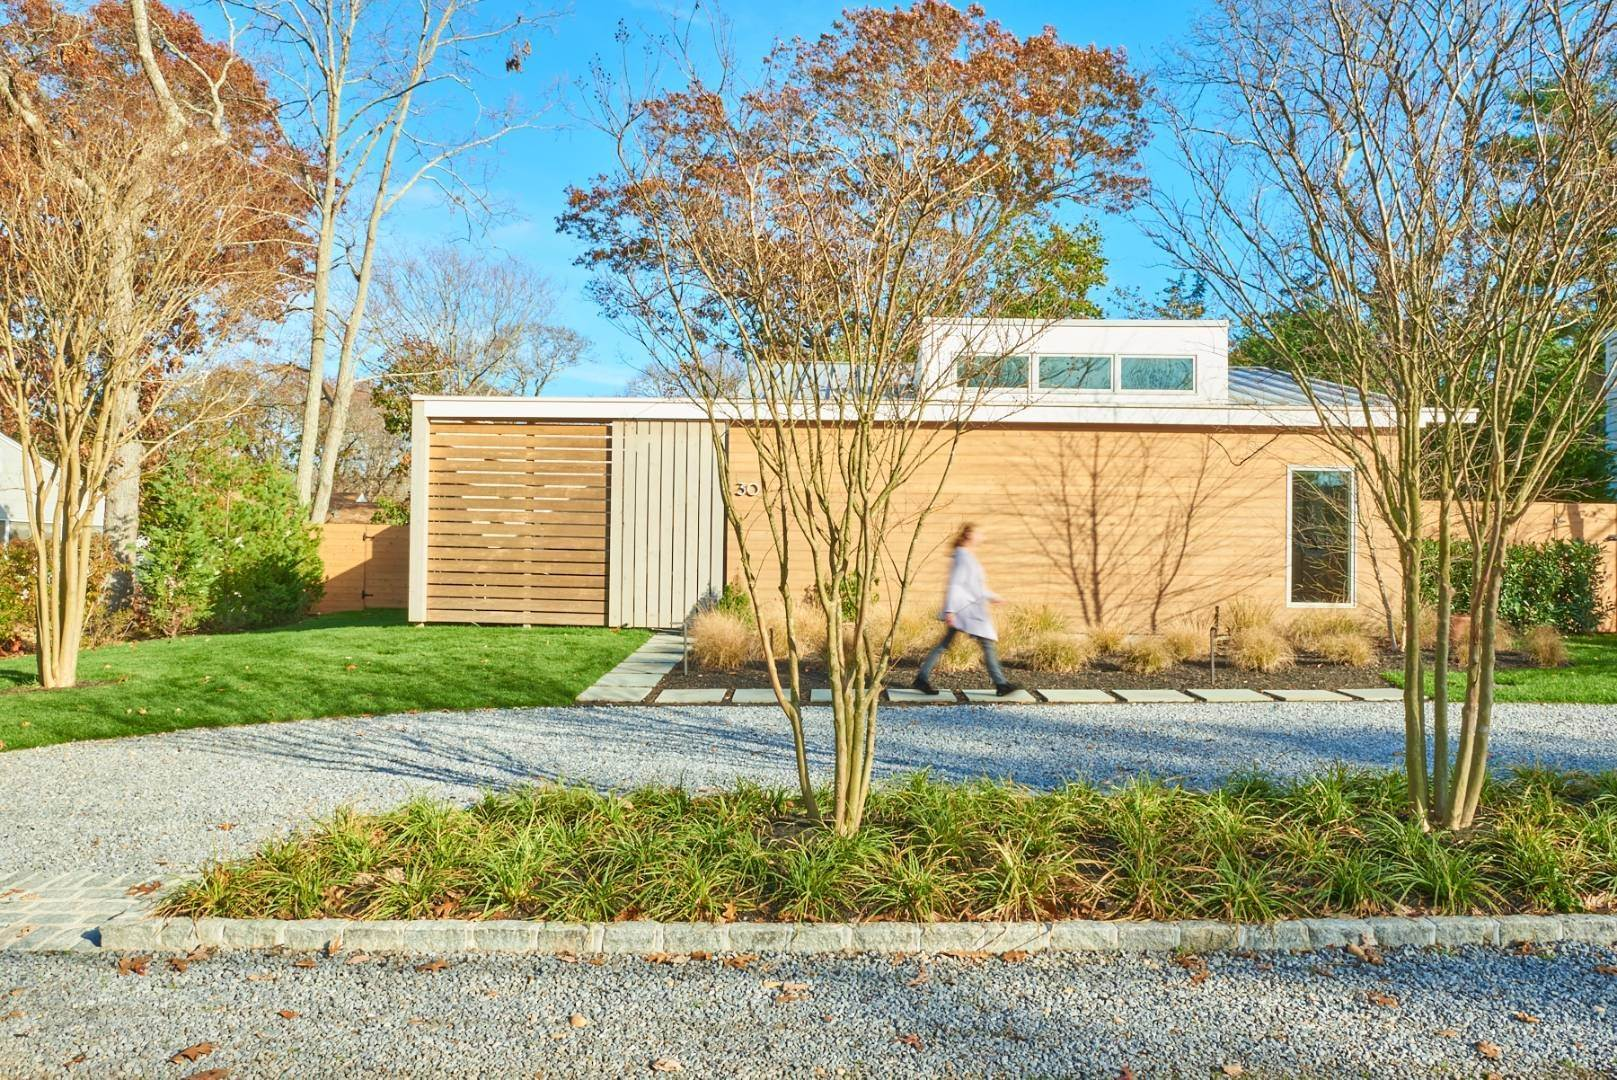 Single Family Home at Pine Neck Modern Comfort 30 Birch Street, Sag Harbor, NY 11963